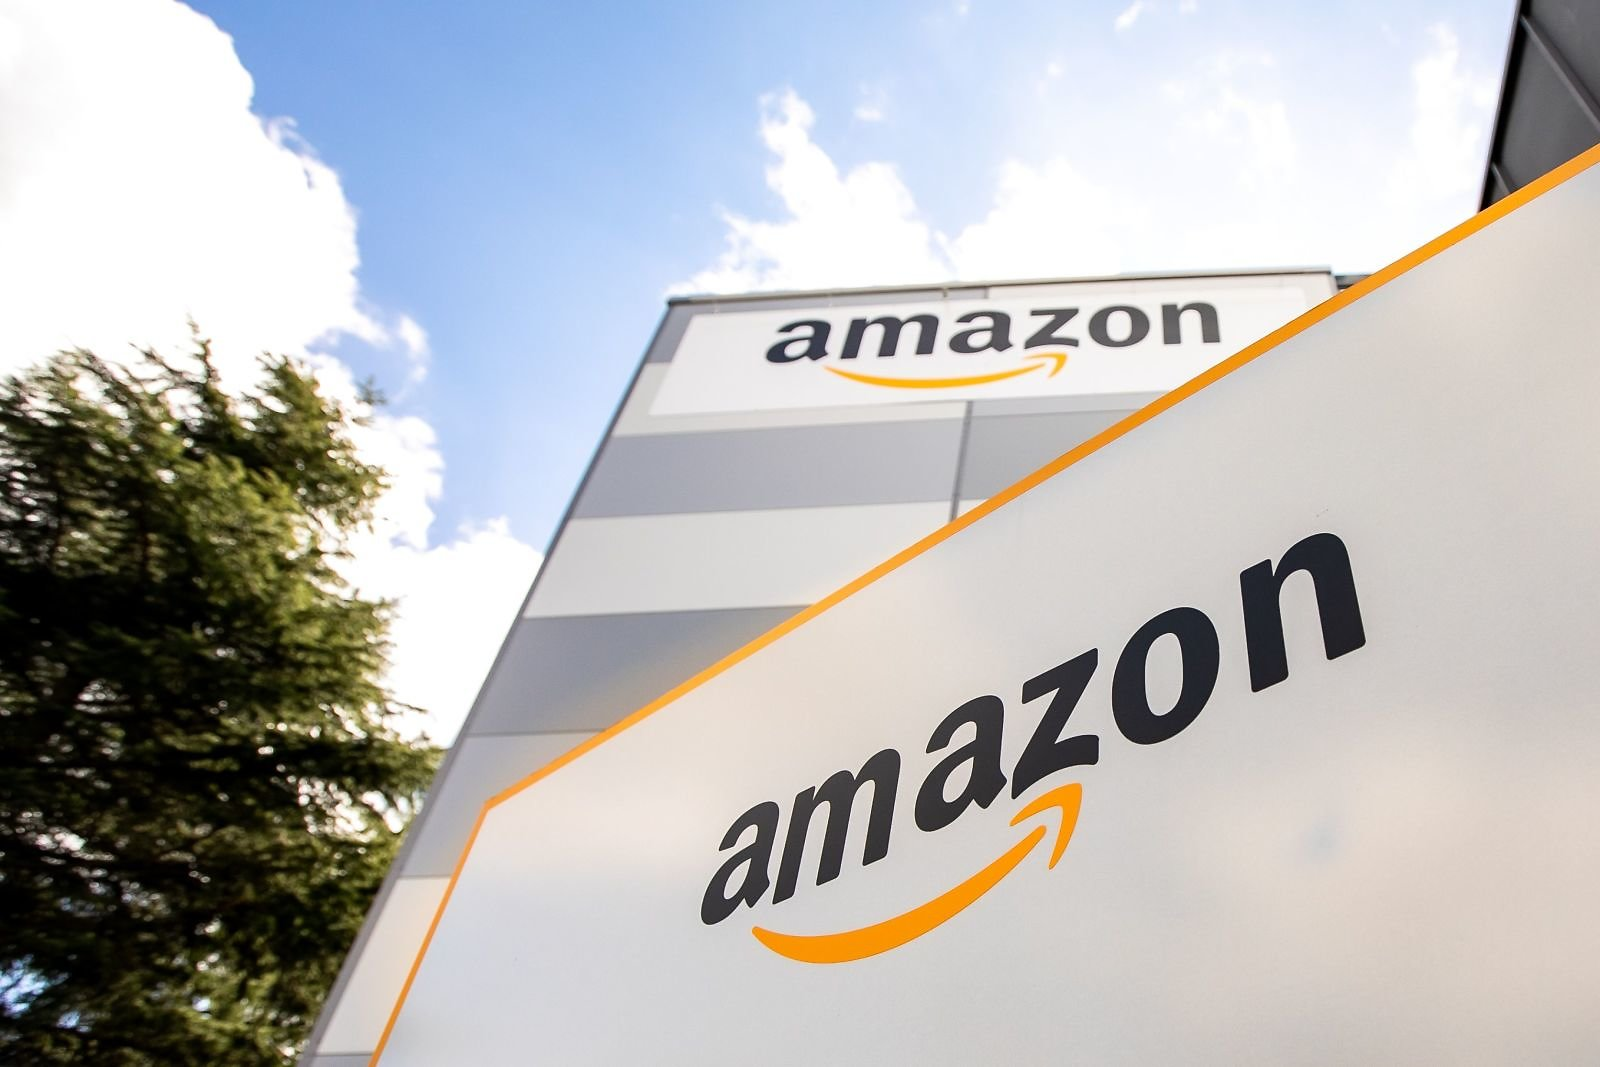 11 Hidden Amazon Perks You May Not Know About